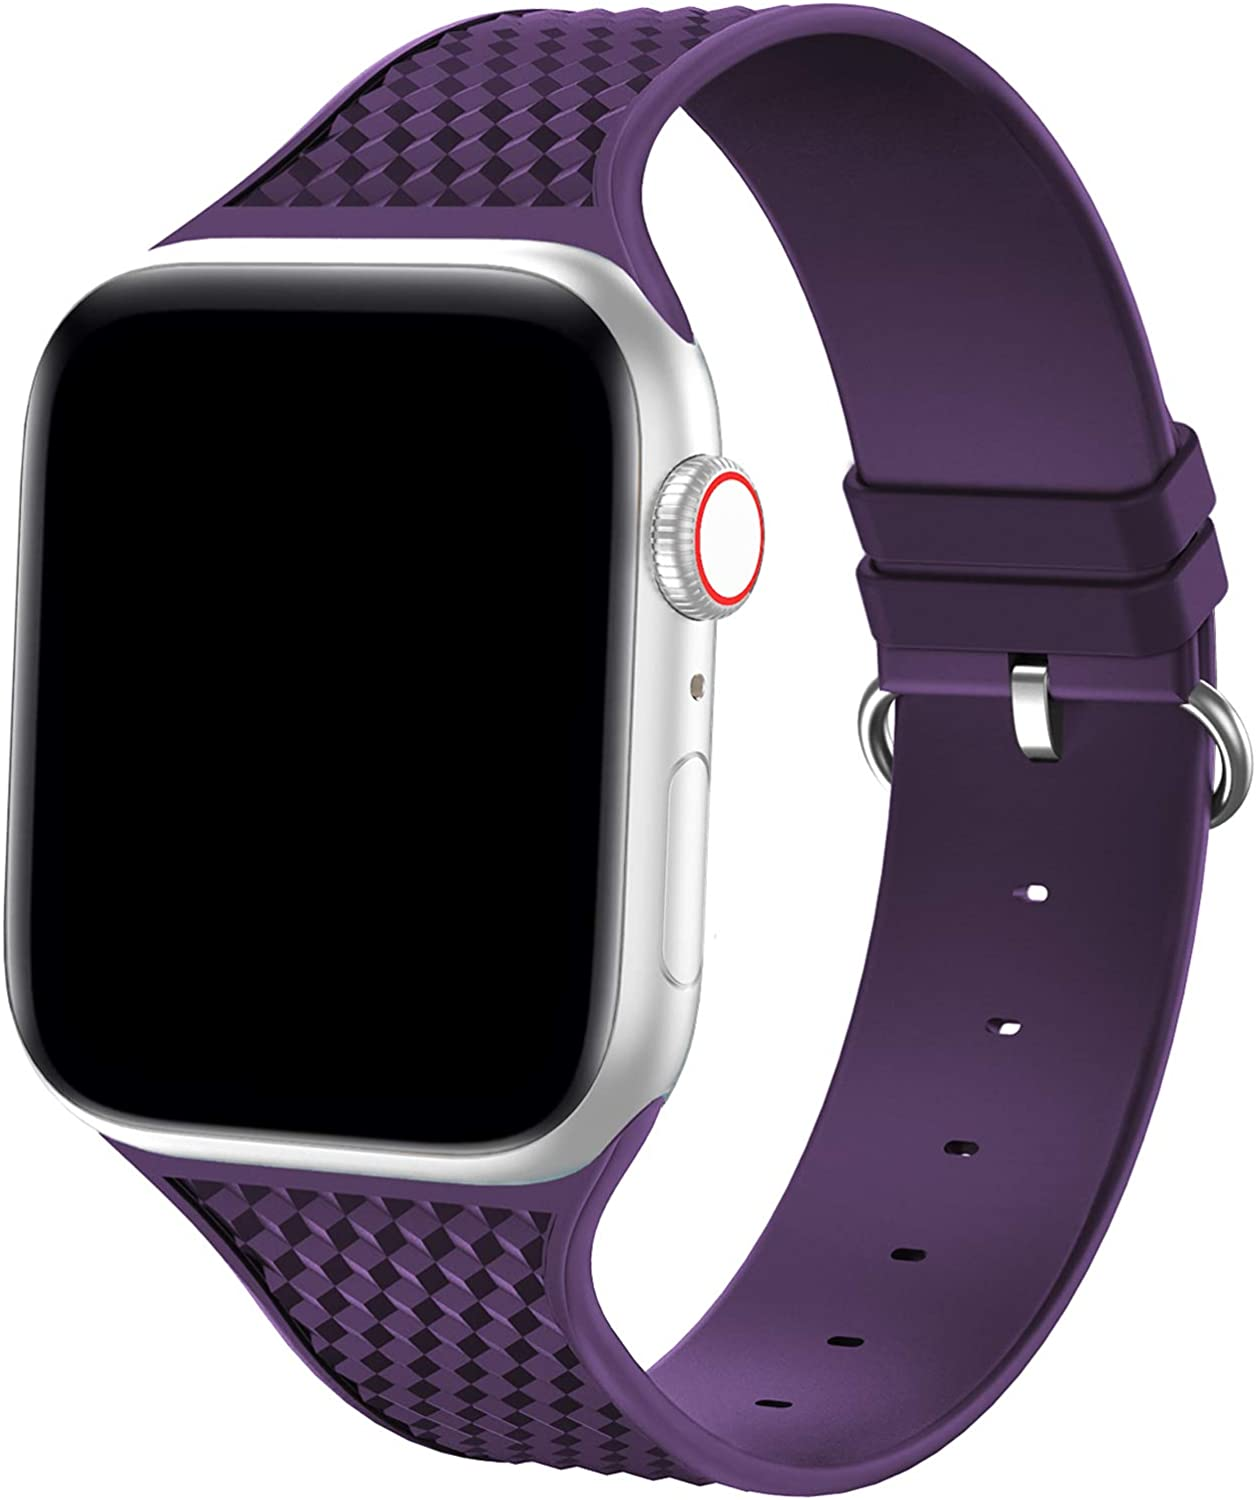 YAXIN Sport Band Compatible with Apple Watch Band 38mm 40mm iWatch Bands Women Men, Premium Silicone Soft Replacement Band Compatible for Apple iWatch Series SE/6/5/4/3/2/1,Modena